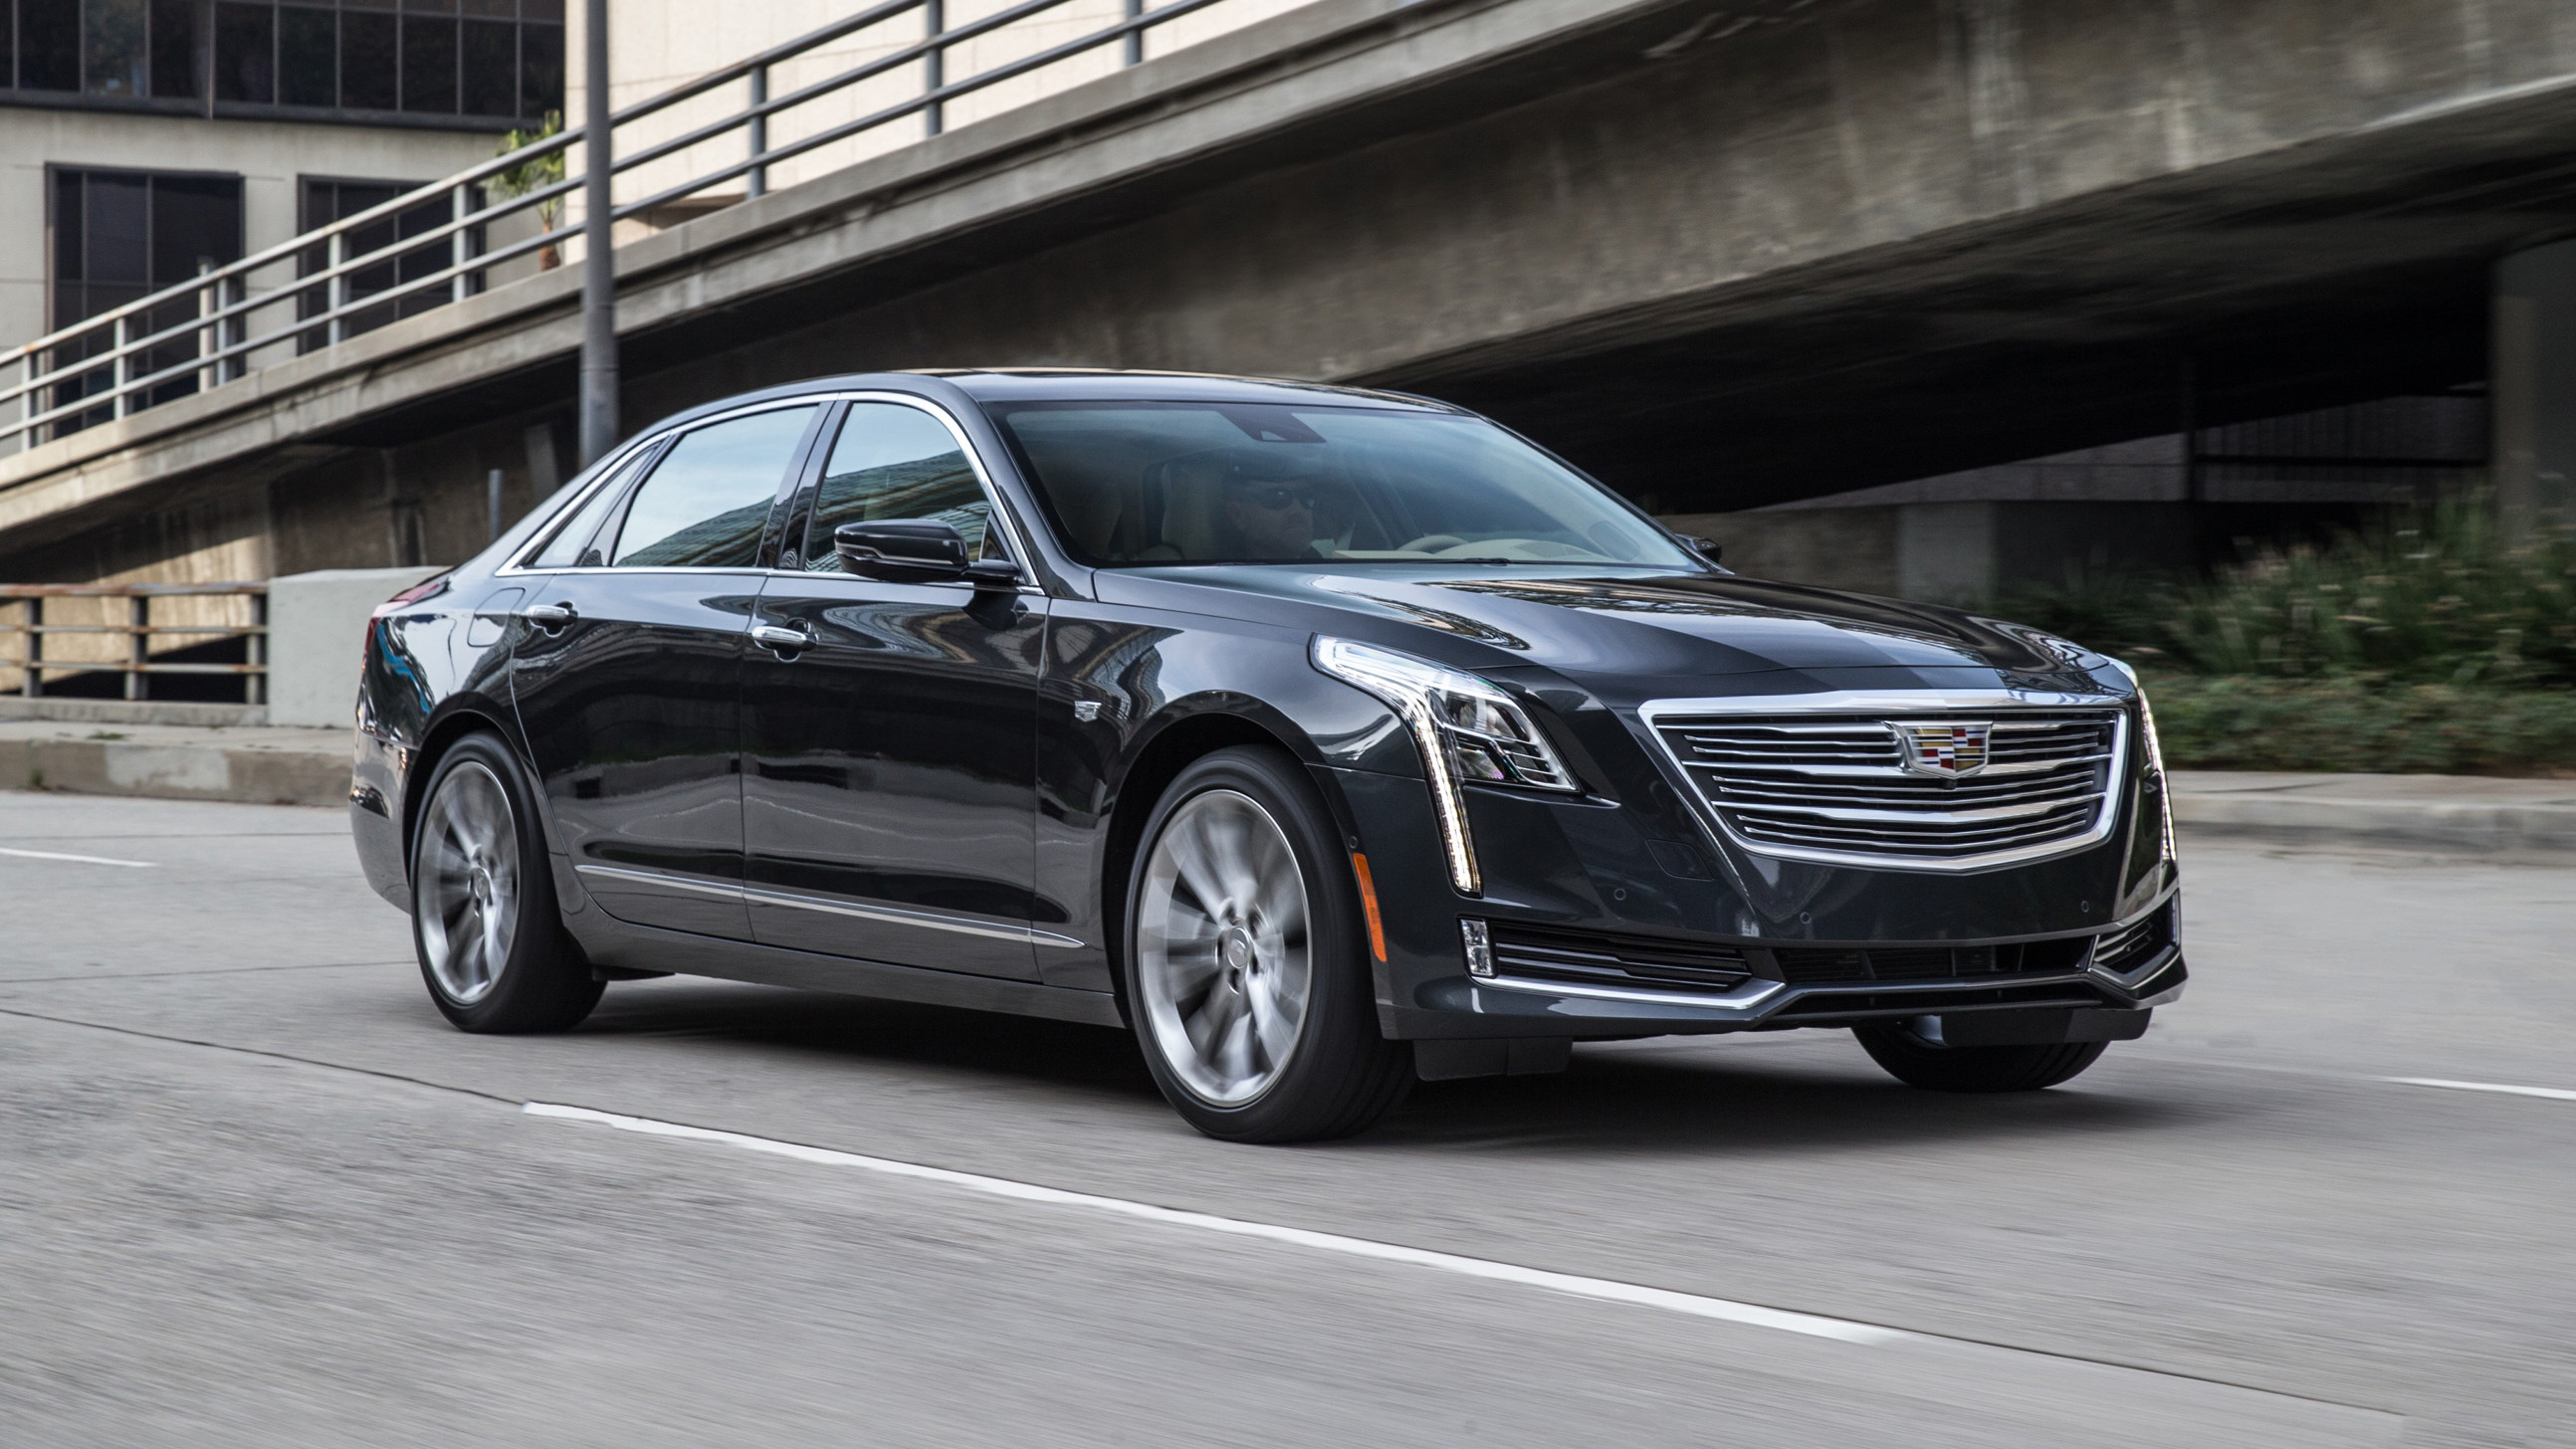 and rizza cadillac tinley dealer coupe the a new car ats is park